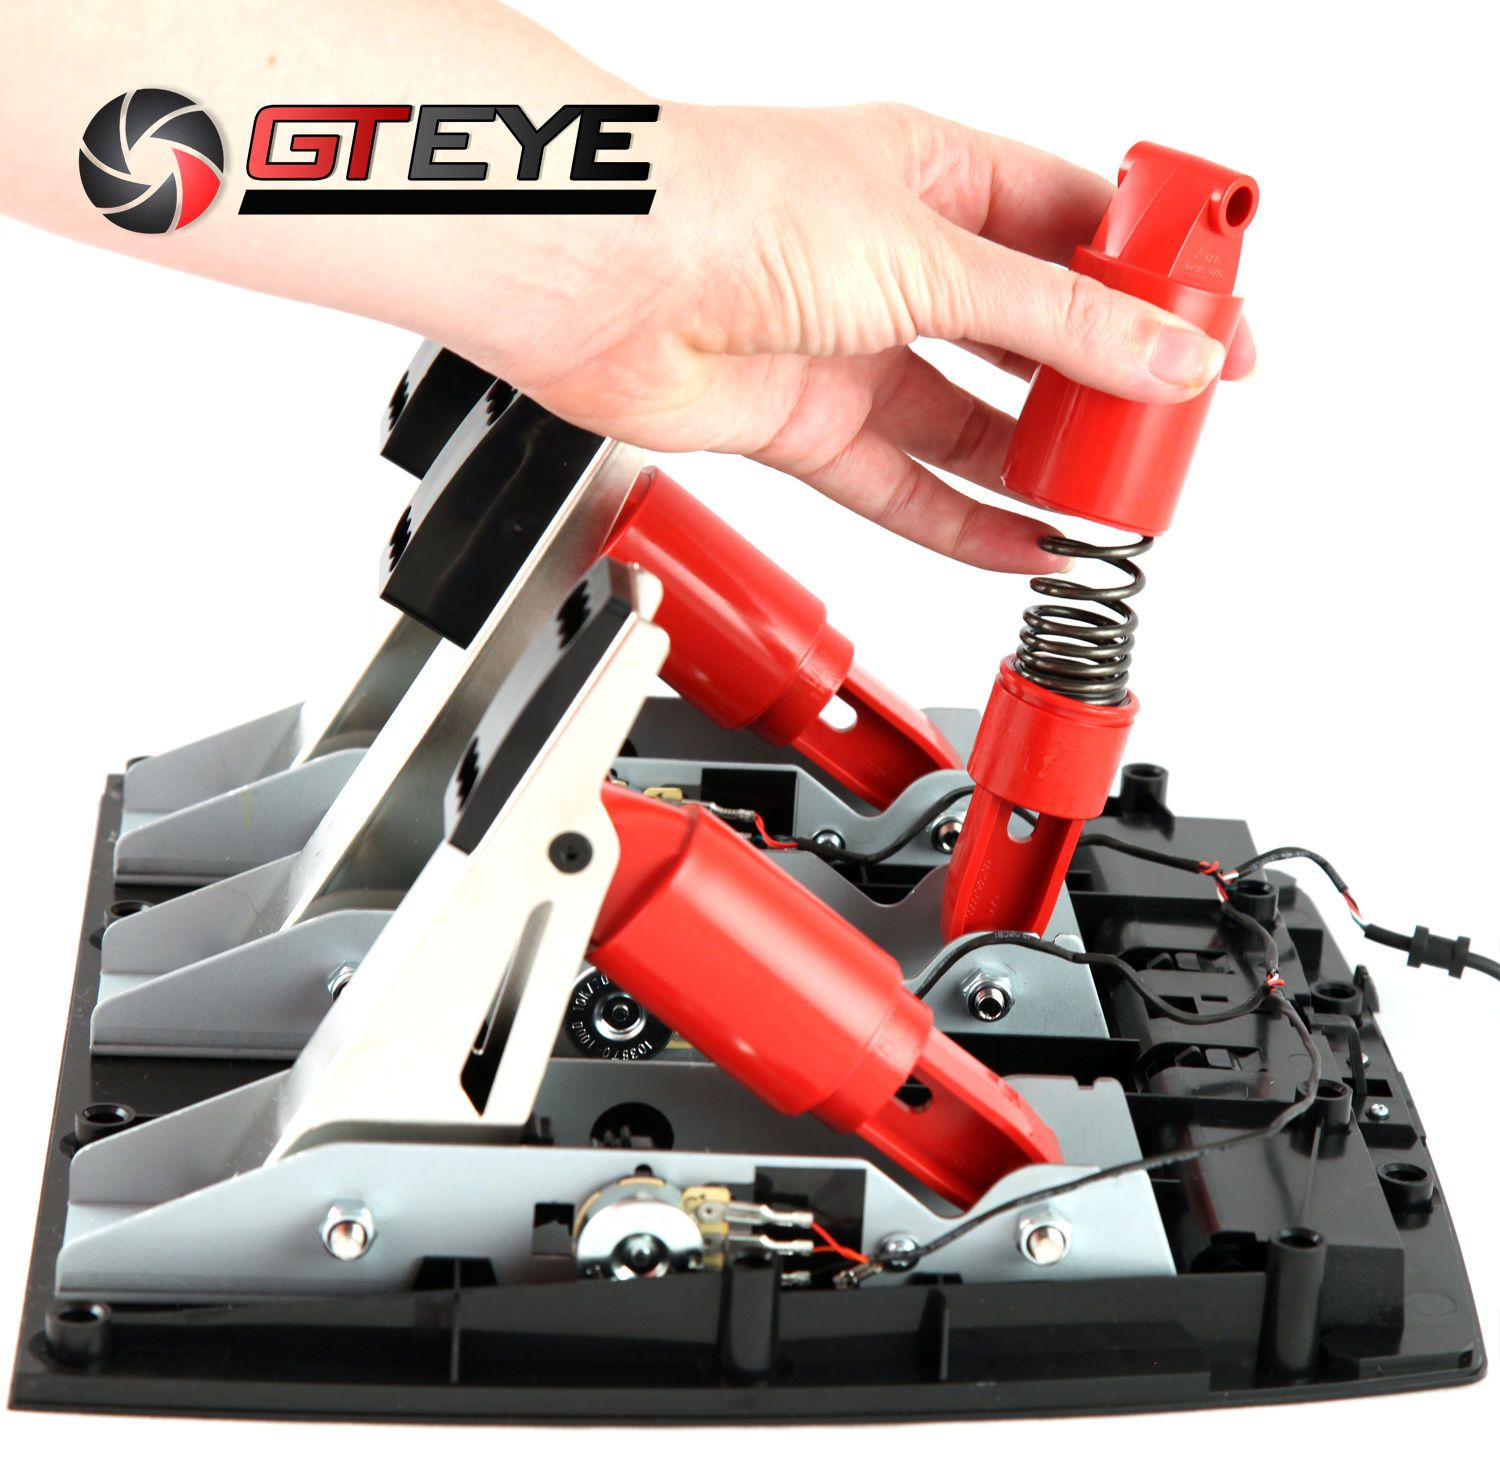 a96db5f309e GTEYE Brake Pedal Spring for LOGITECH G25 G27 G29 G920 Racing Wheel Upgrade  Mod